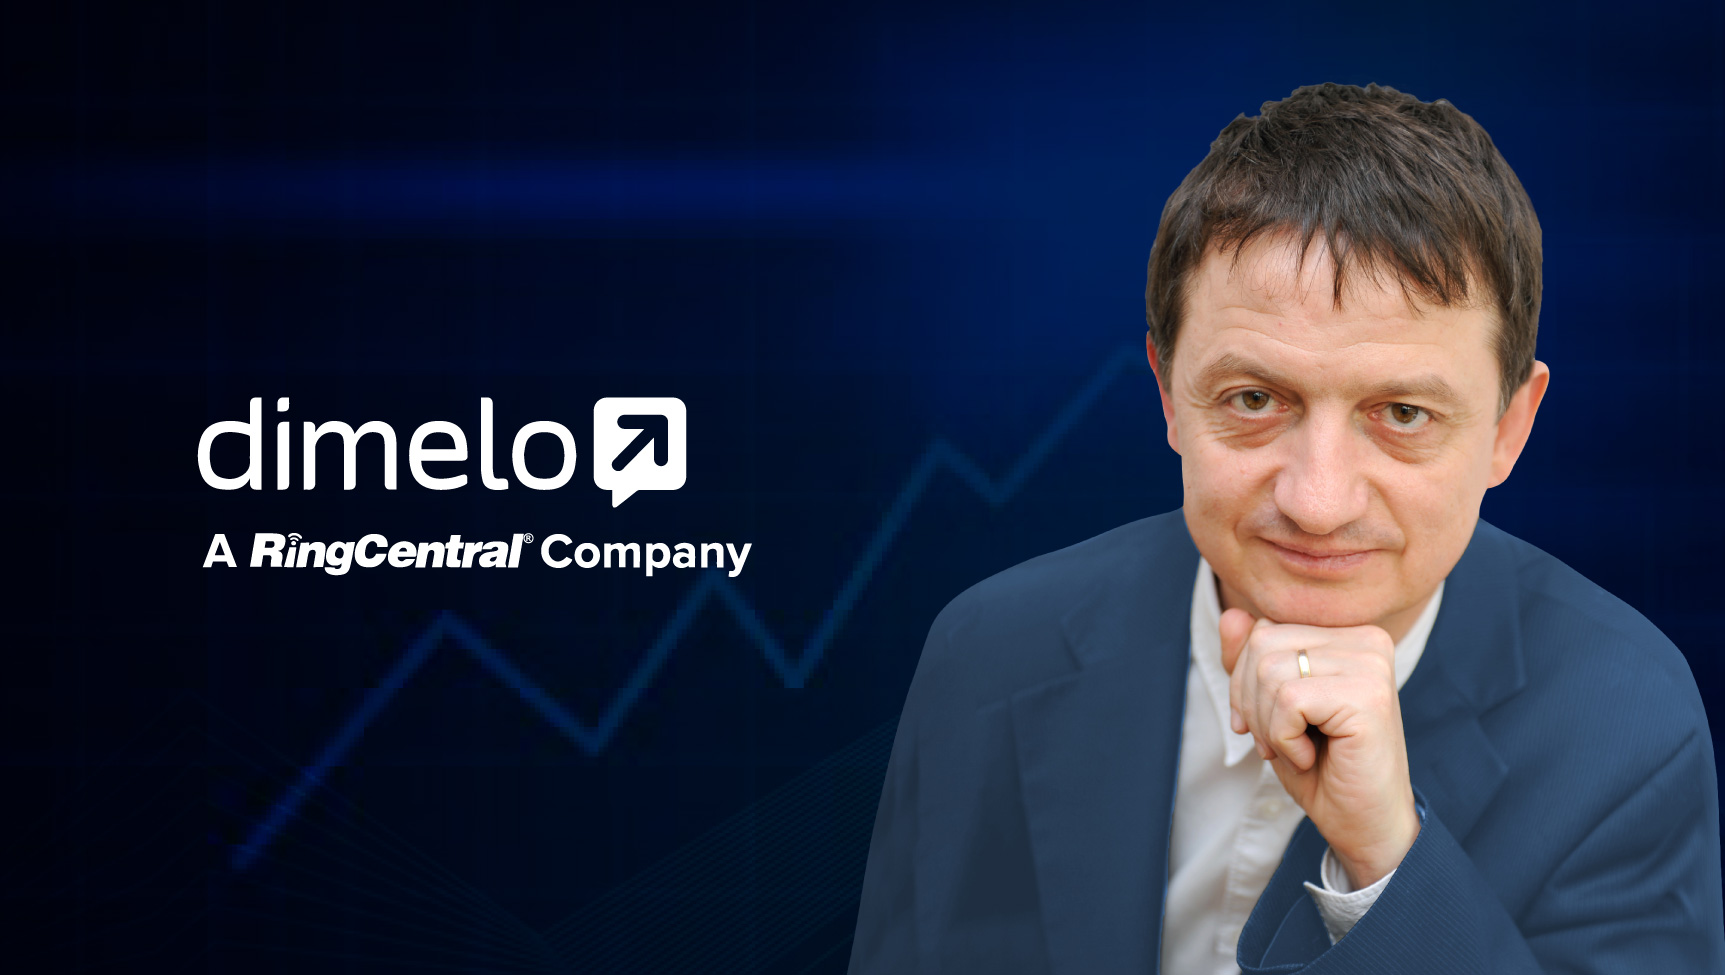 SalesTech Interview With Eric Dos Santos, Regional Manager MEA and Co-Founder at Dimelo, a RingCentral Company